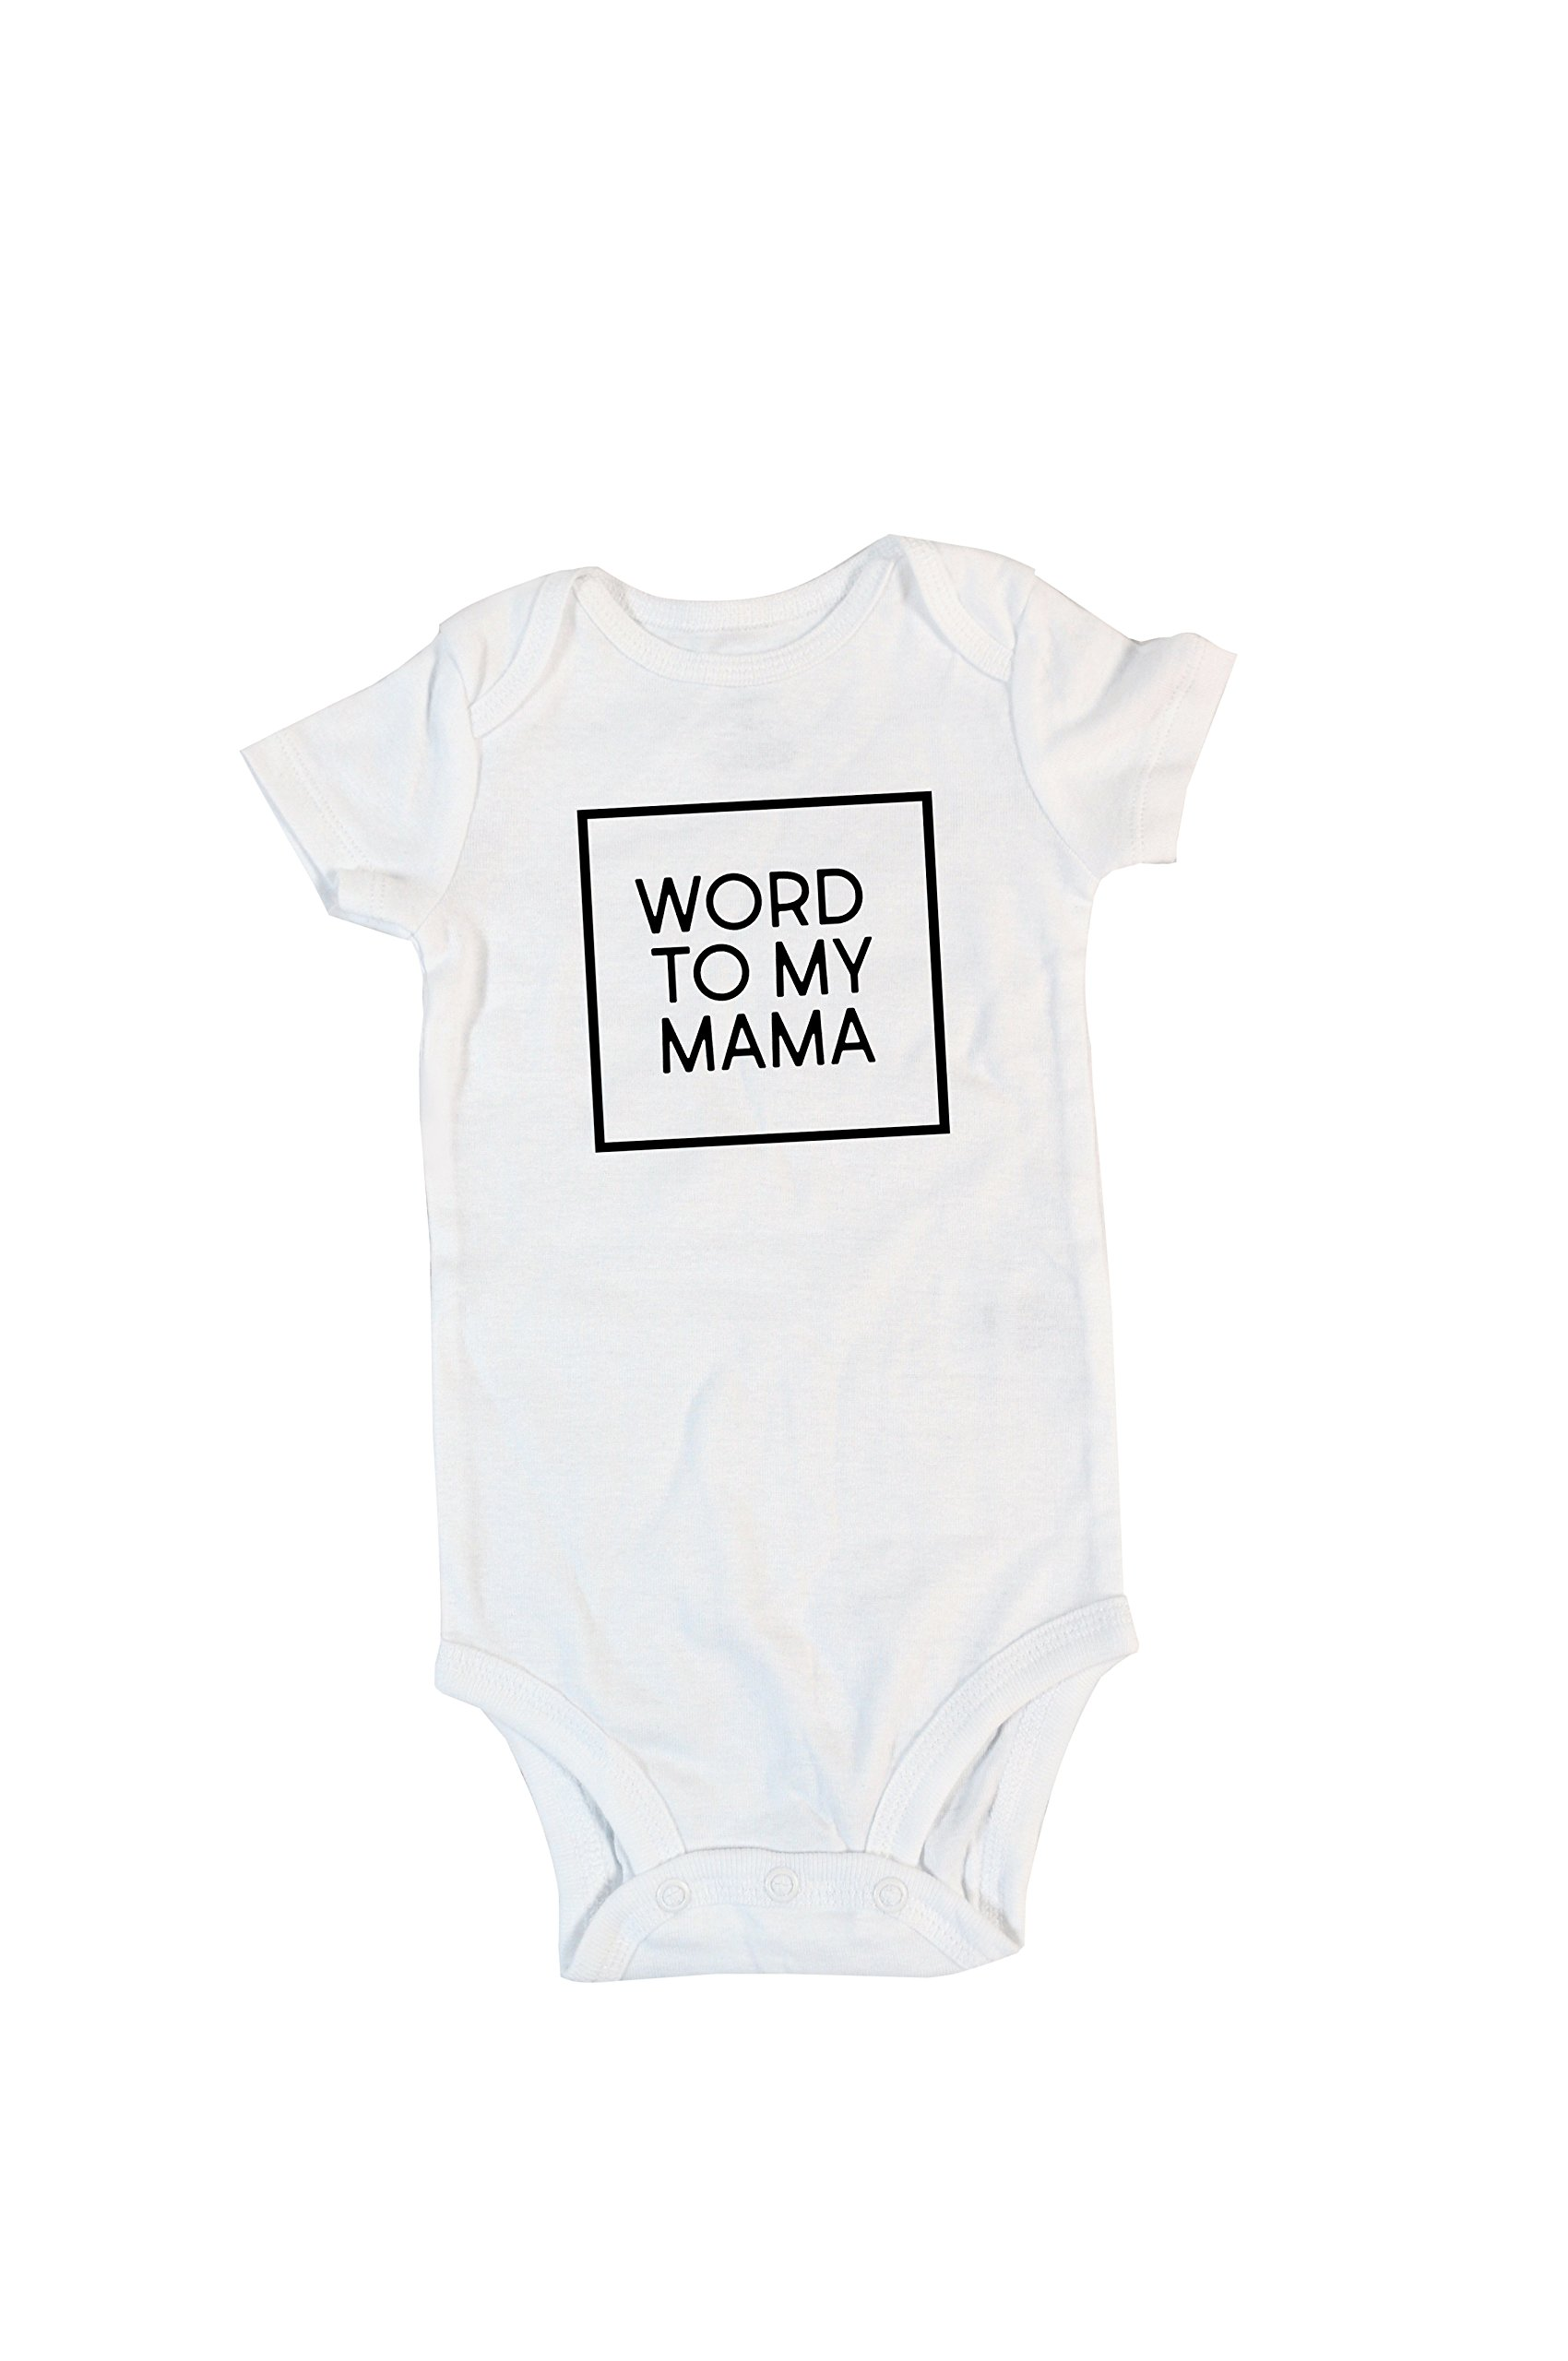 Belle Lane Designs, Boy's Word To My Mama Onesie, Mother's Day Gift or Momma's Boy 403